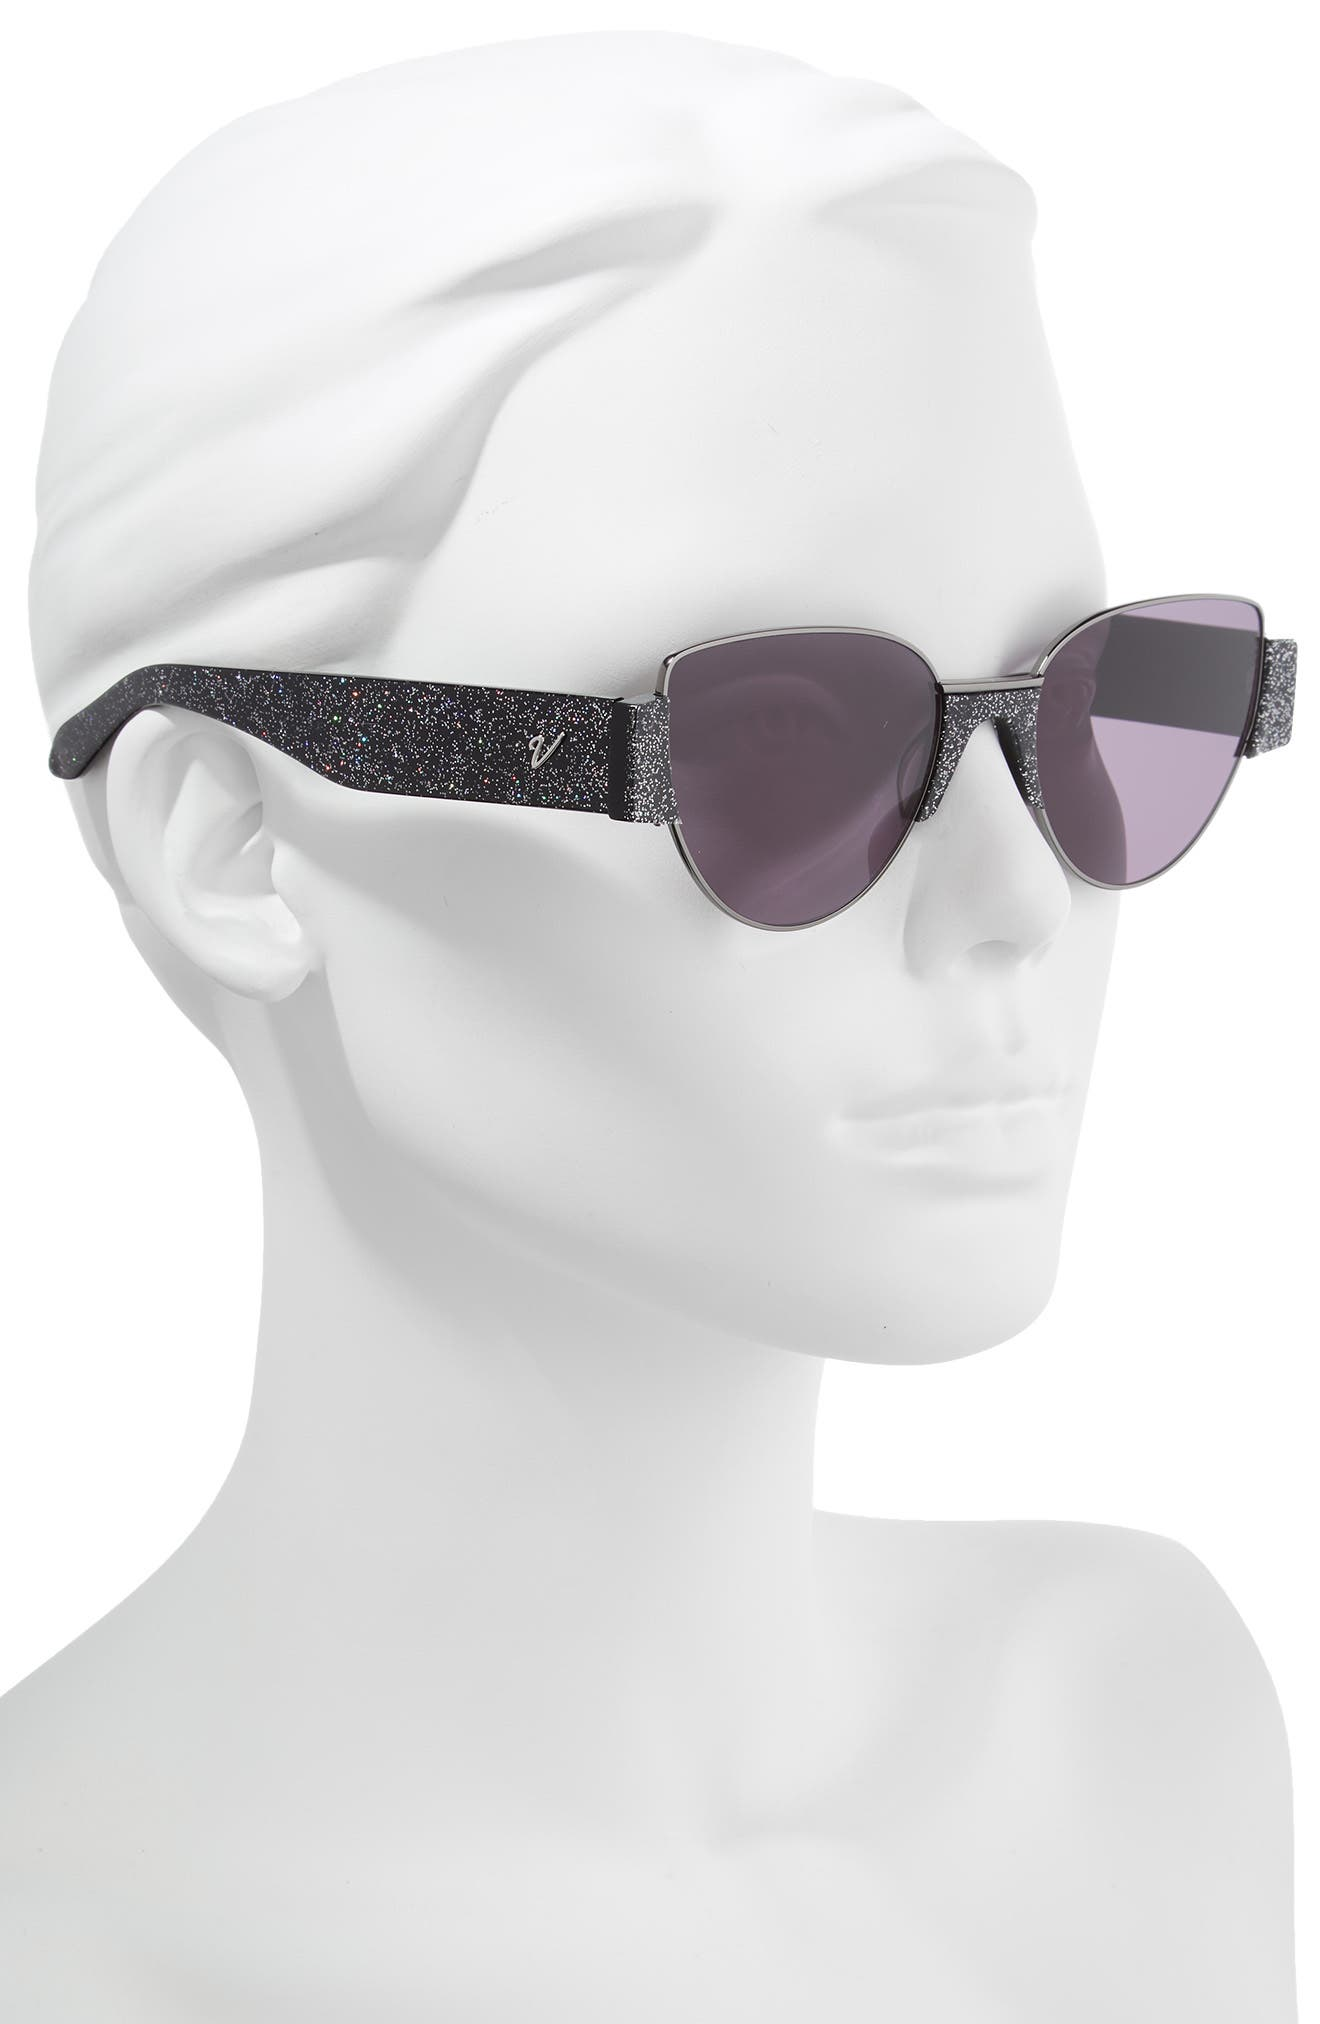 Dahlia 55mm Cat Eye Sunglasses,                             Alternate thumbnail 2, color,                             Multi Glitter/ Gunmetal/ Smoke